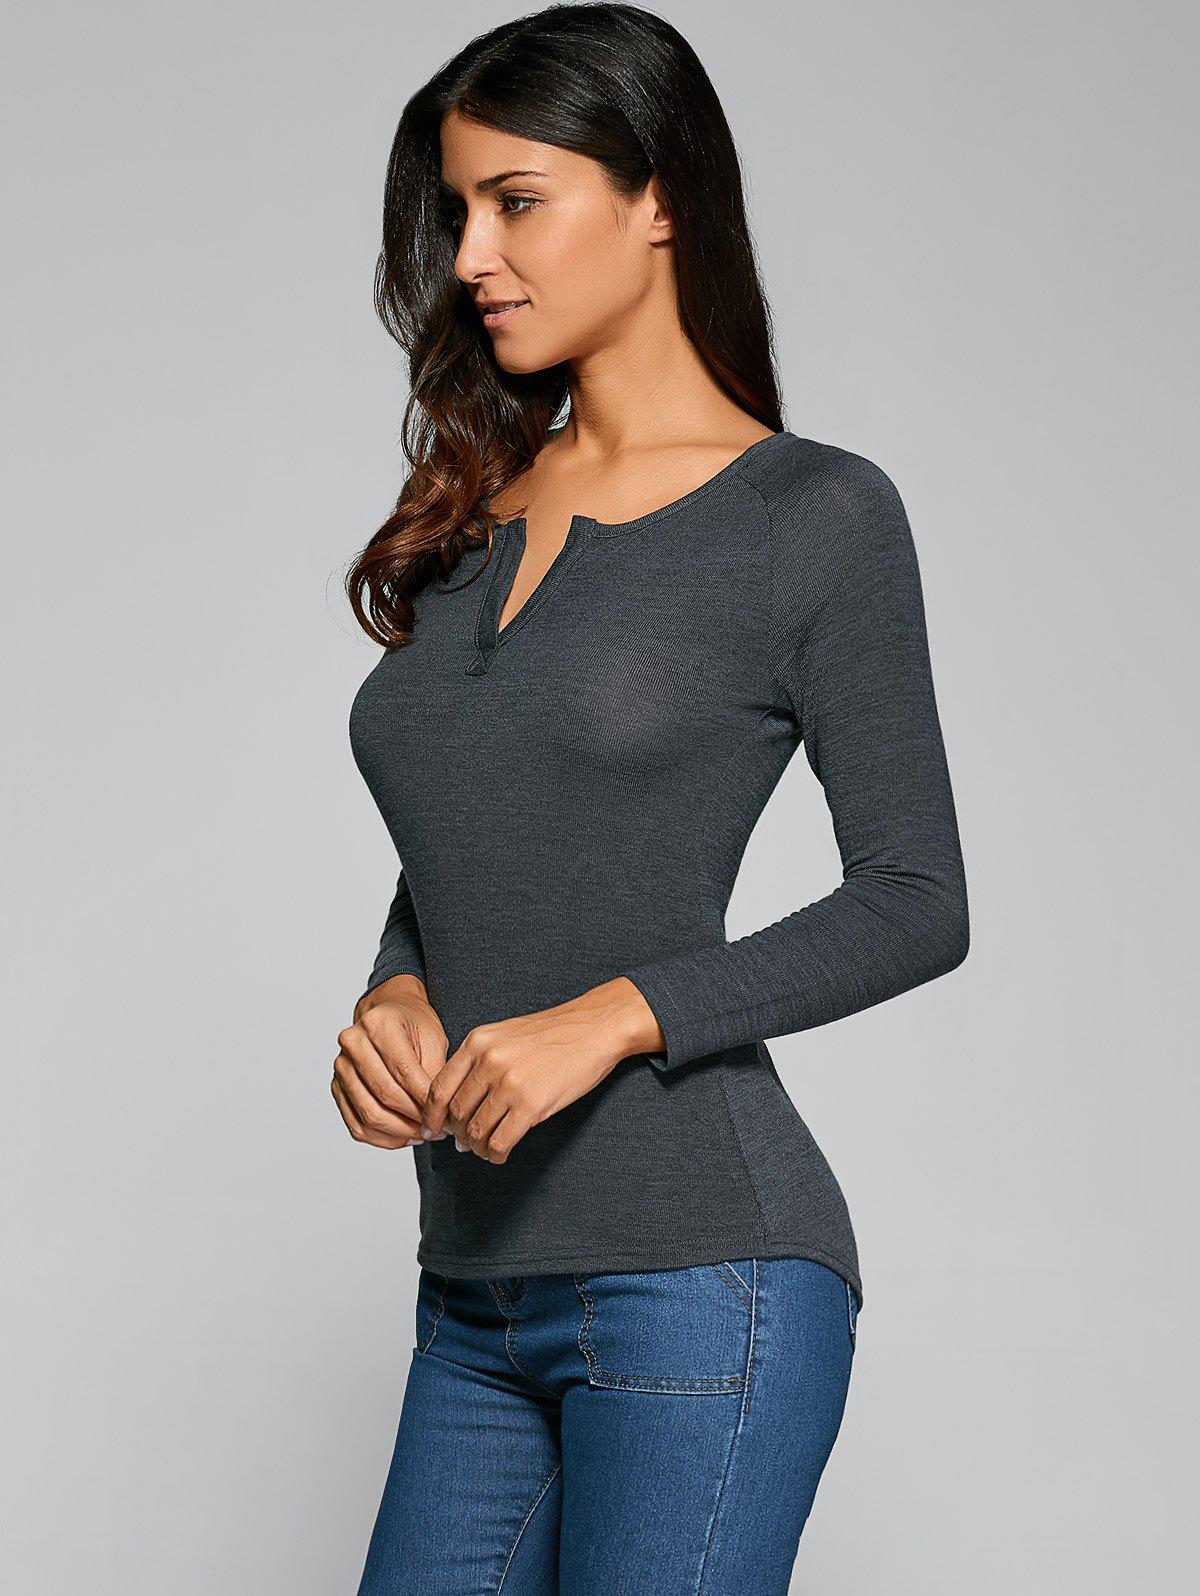 Long Sleeve V Neck Plain T-Shirt - DEEP GRAY M